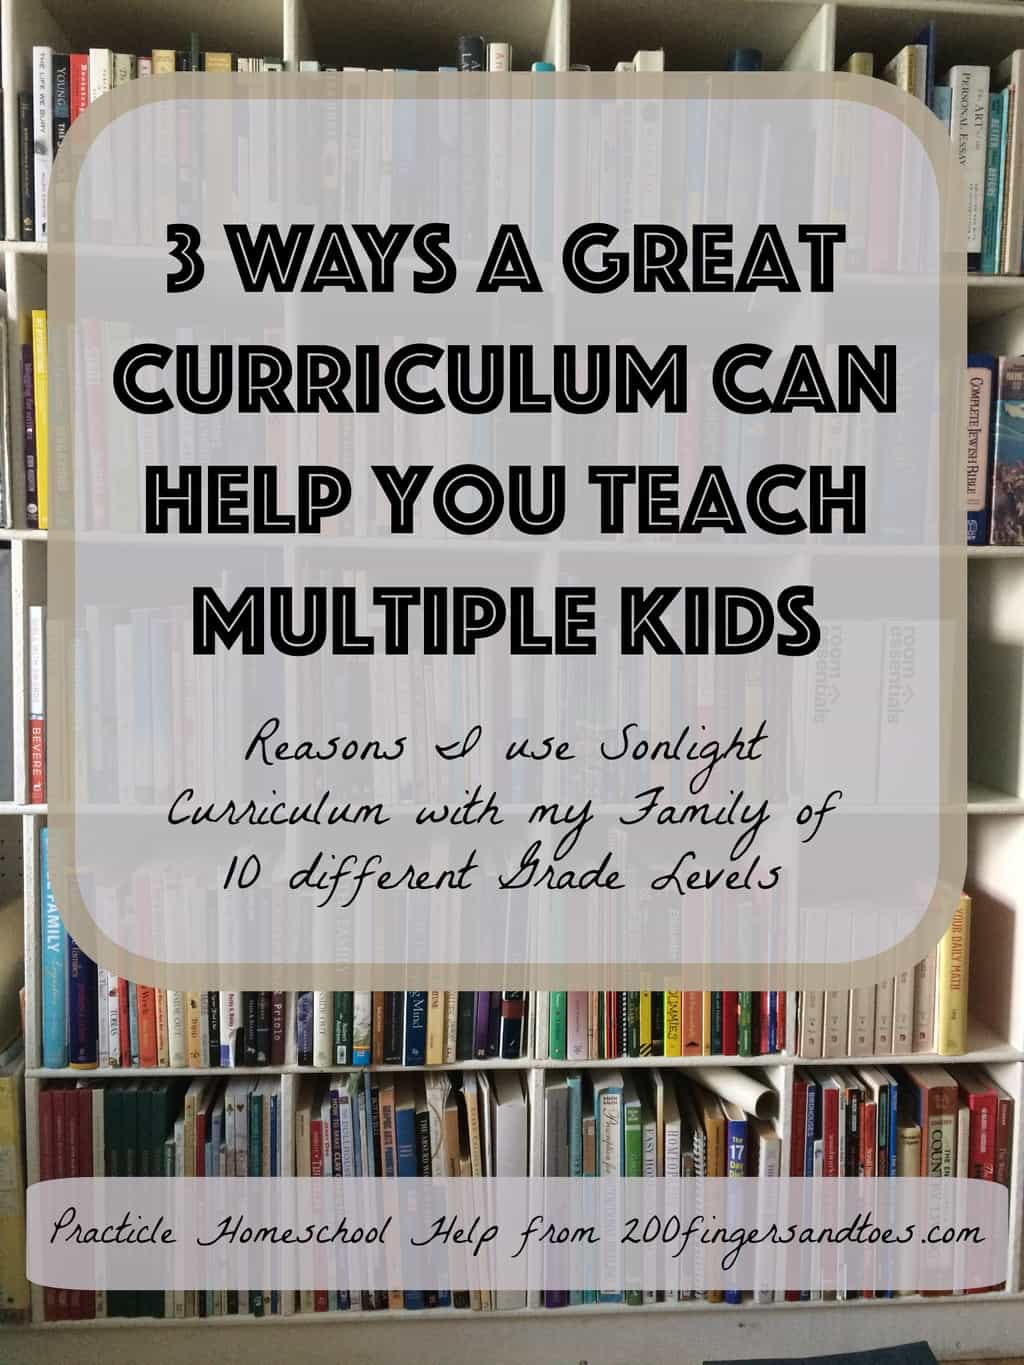 3 Ways a Great Curriculum Helps You Teach Multiple Kids